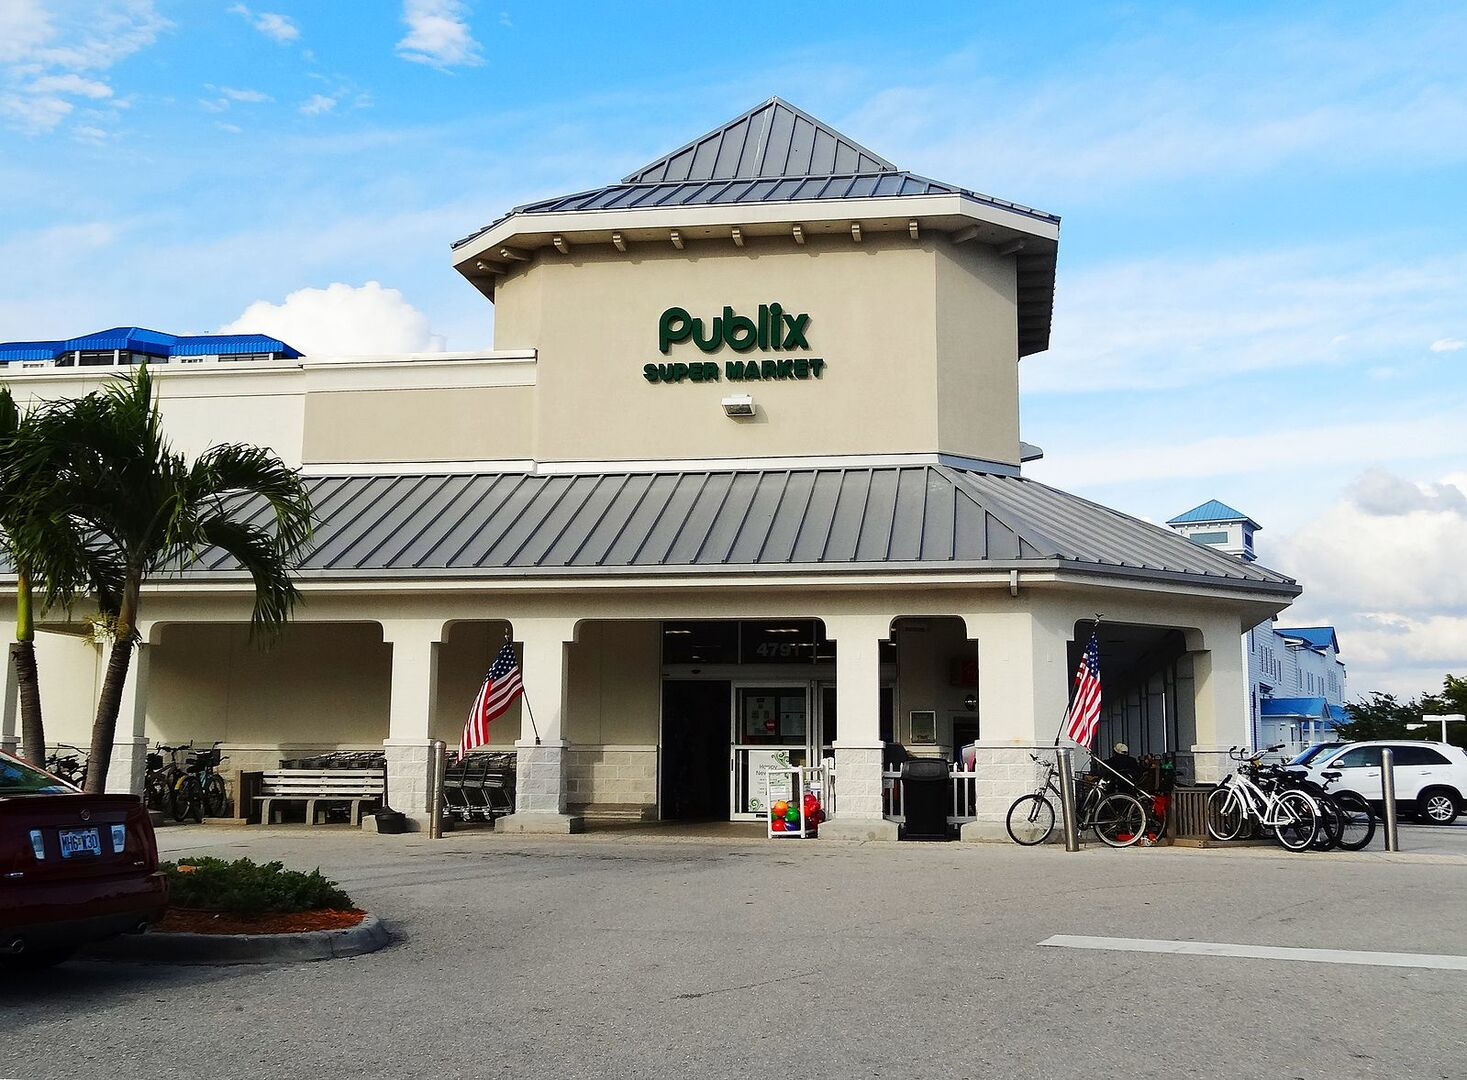 Publix on the island